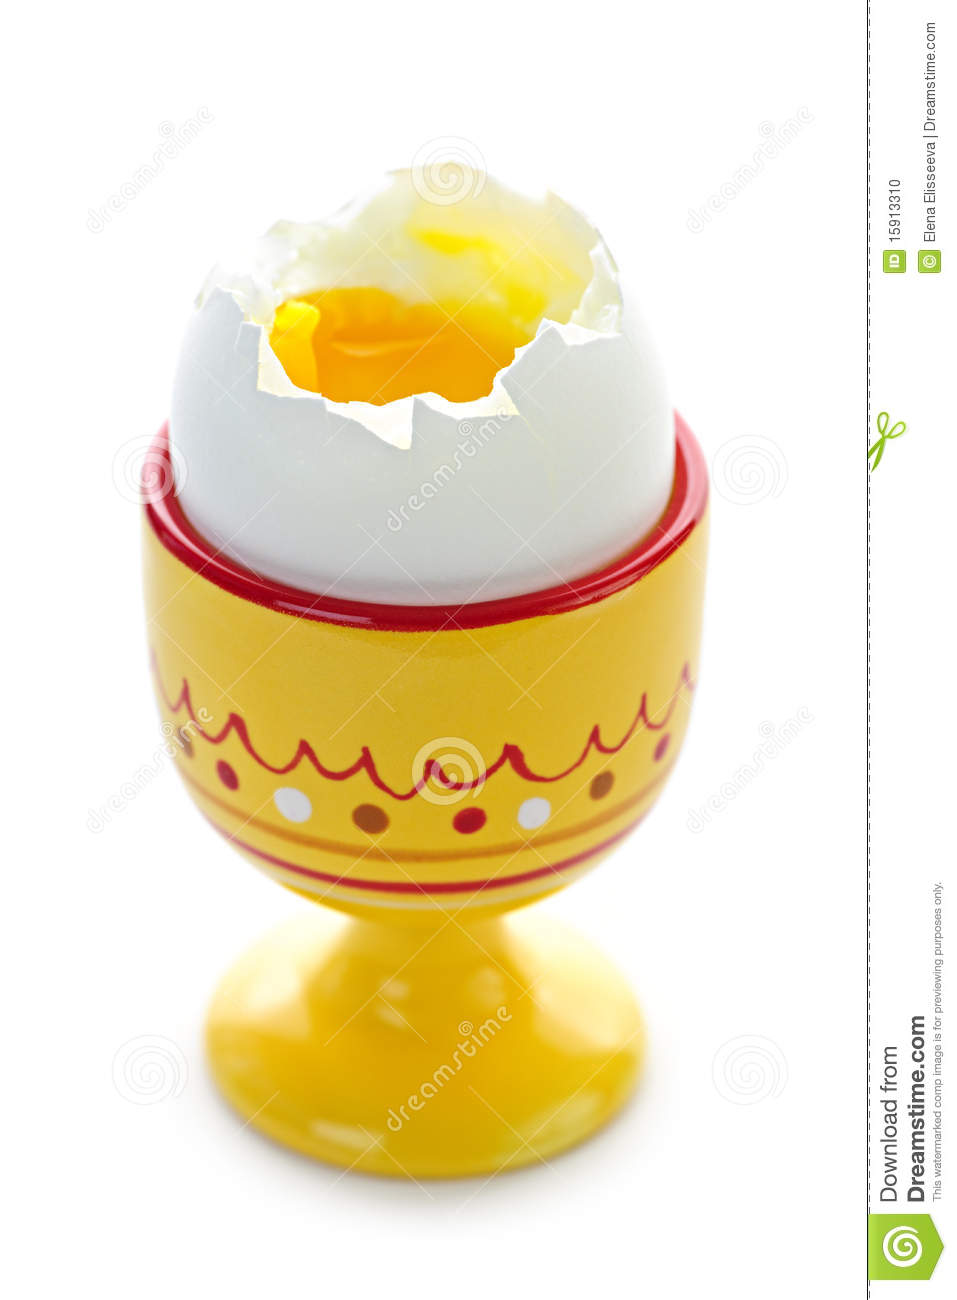 Soft Boiled Egg In Cup Stock Photo.